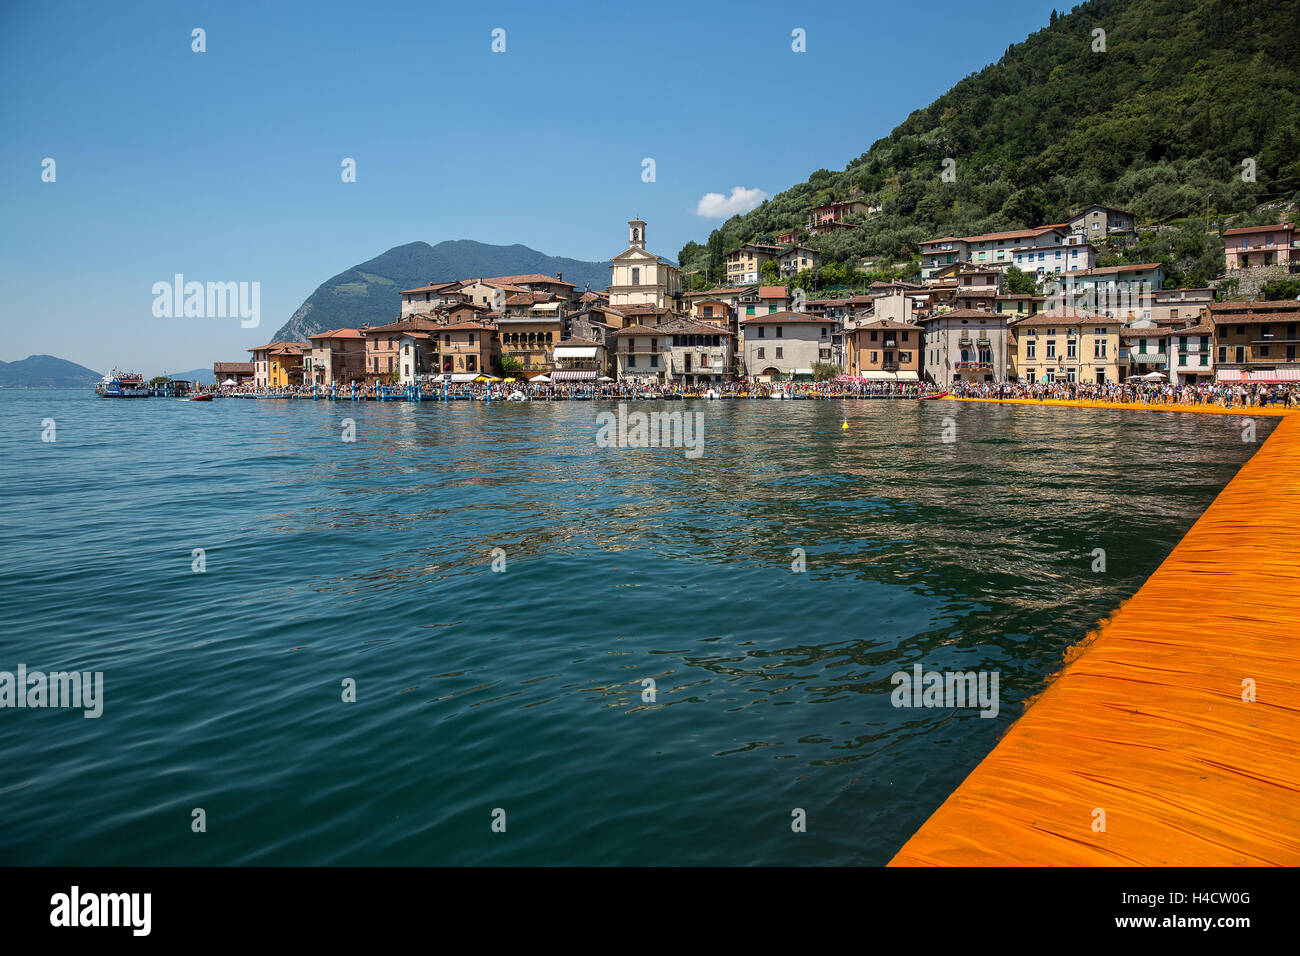 Lago d'Iseo, Floating pier, view at Monte Isola - Stock Image